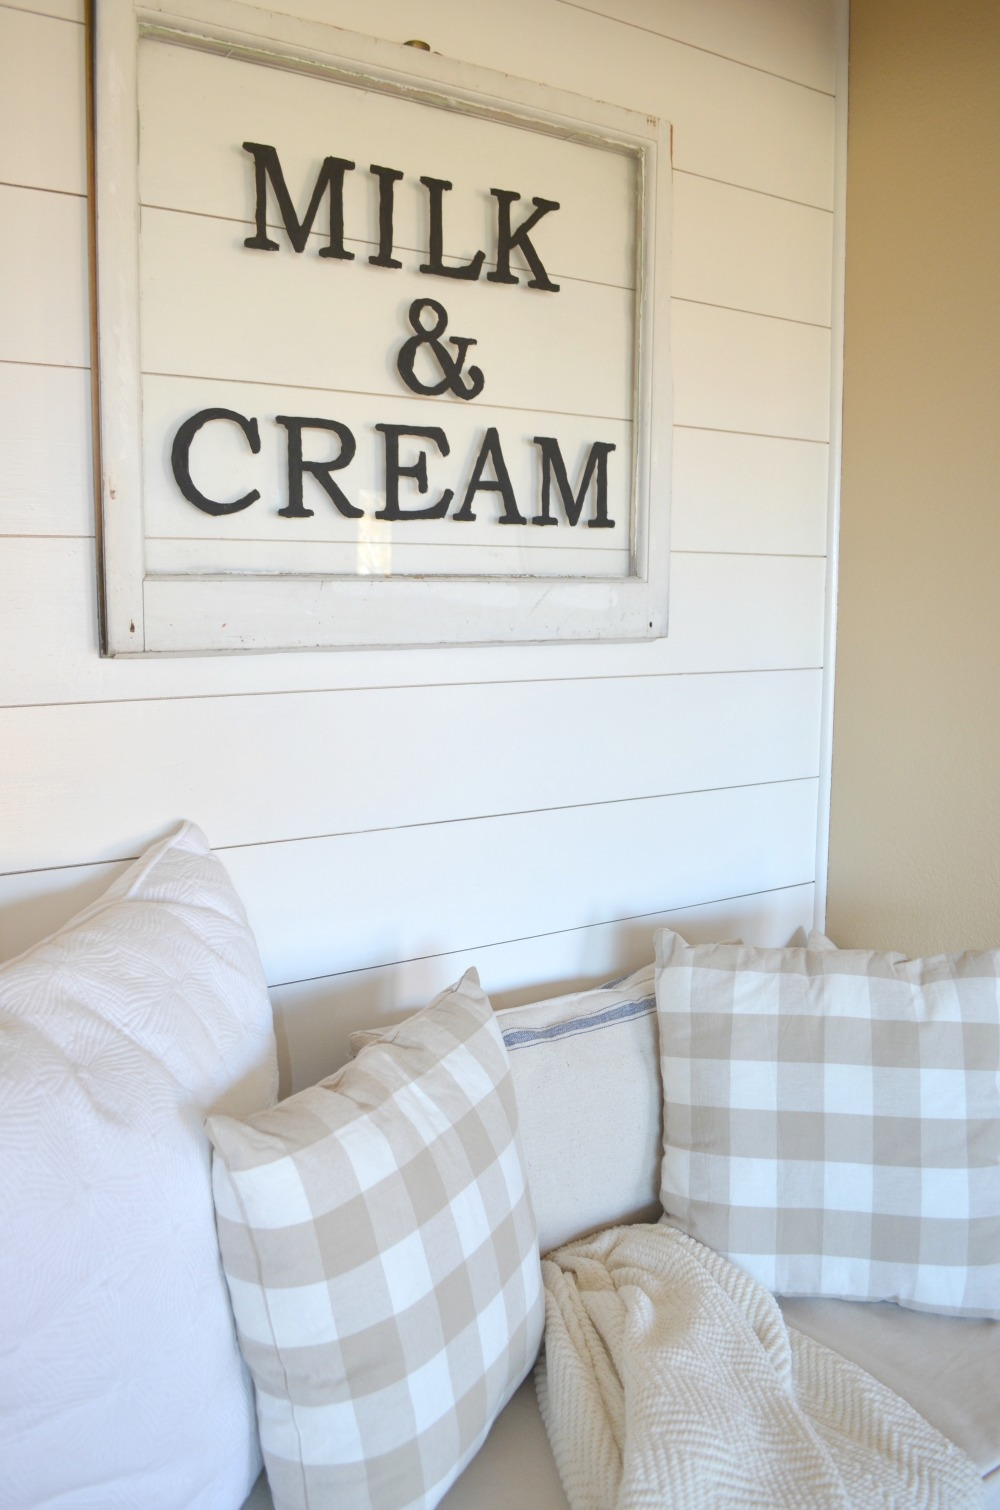 DIY Milk & Cream Sign